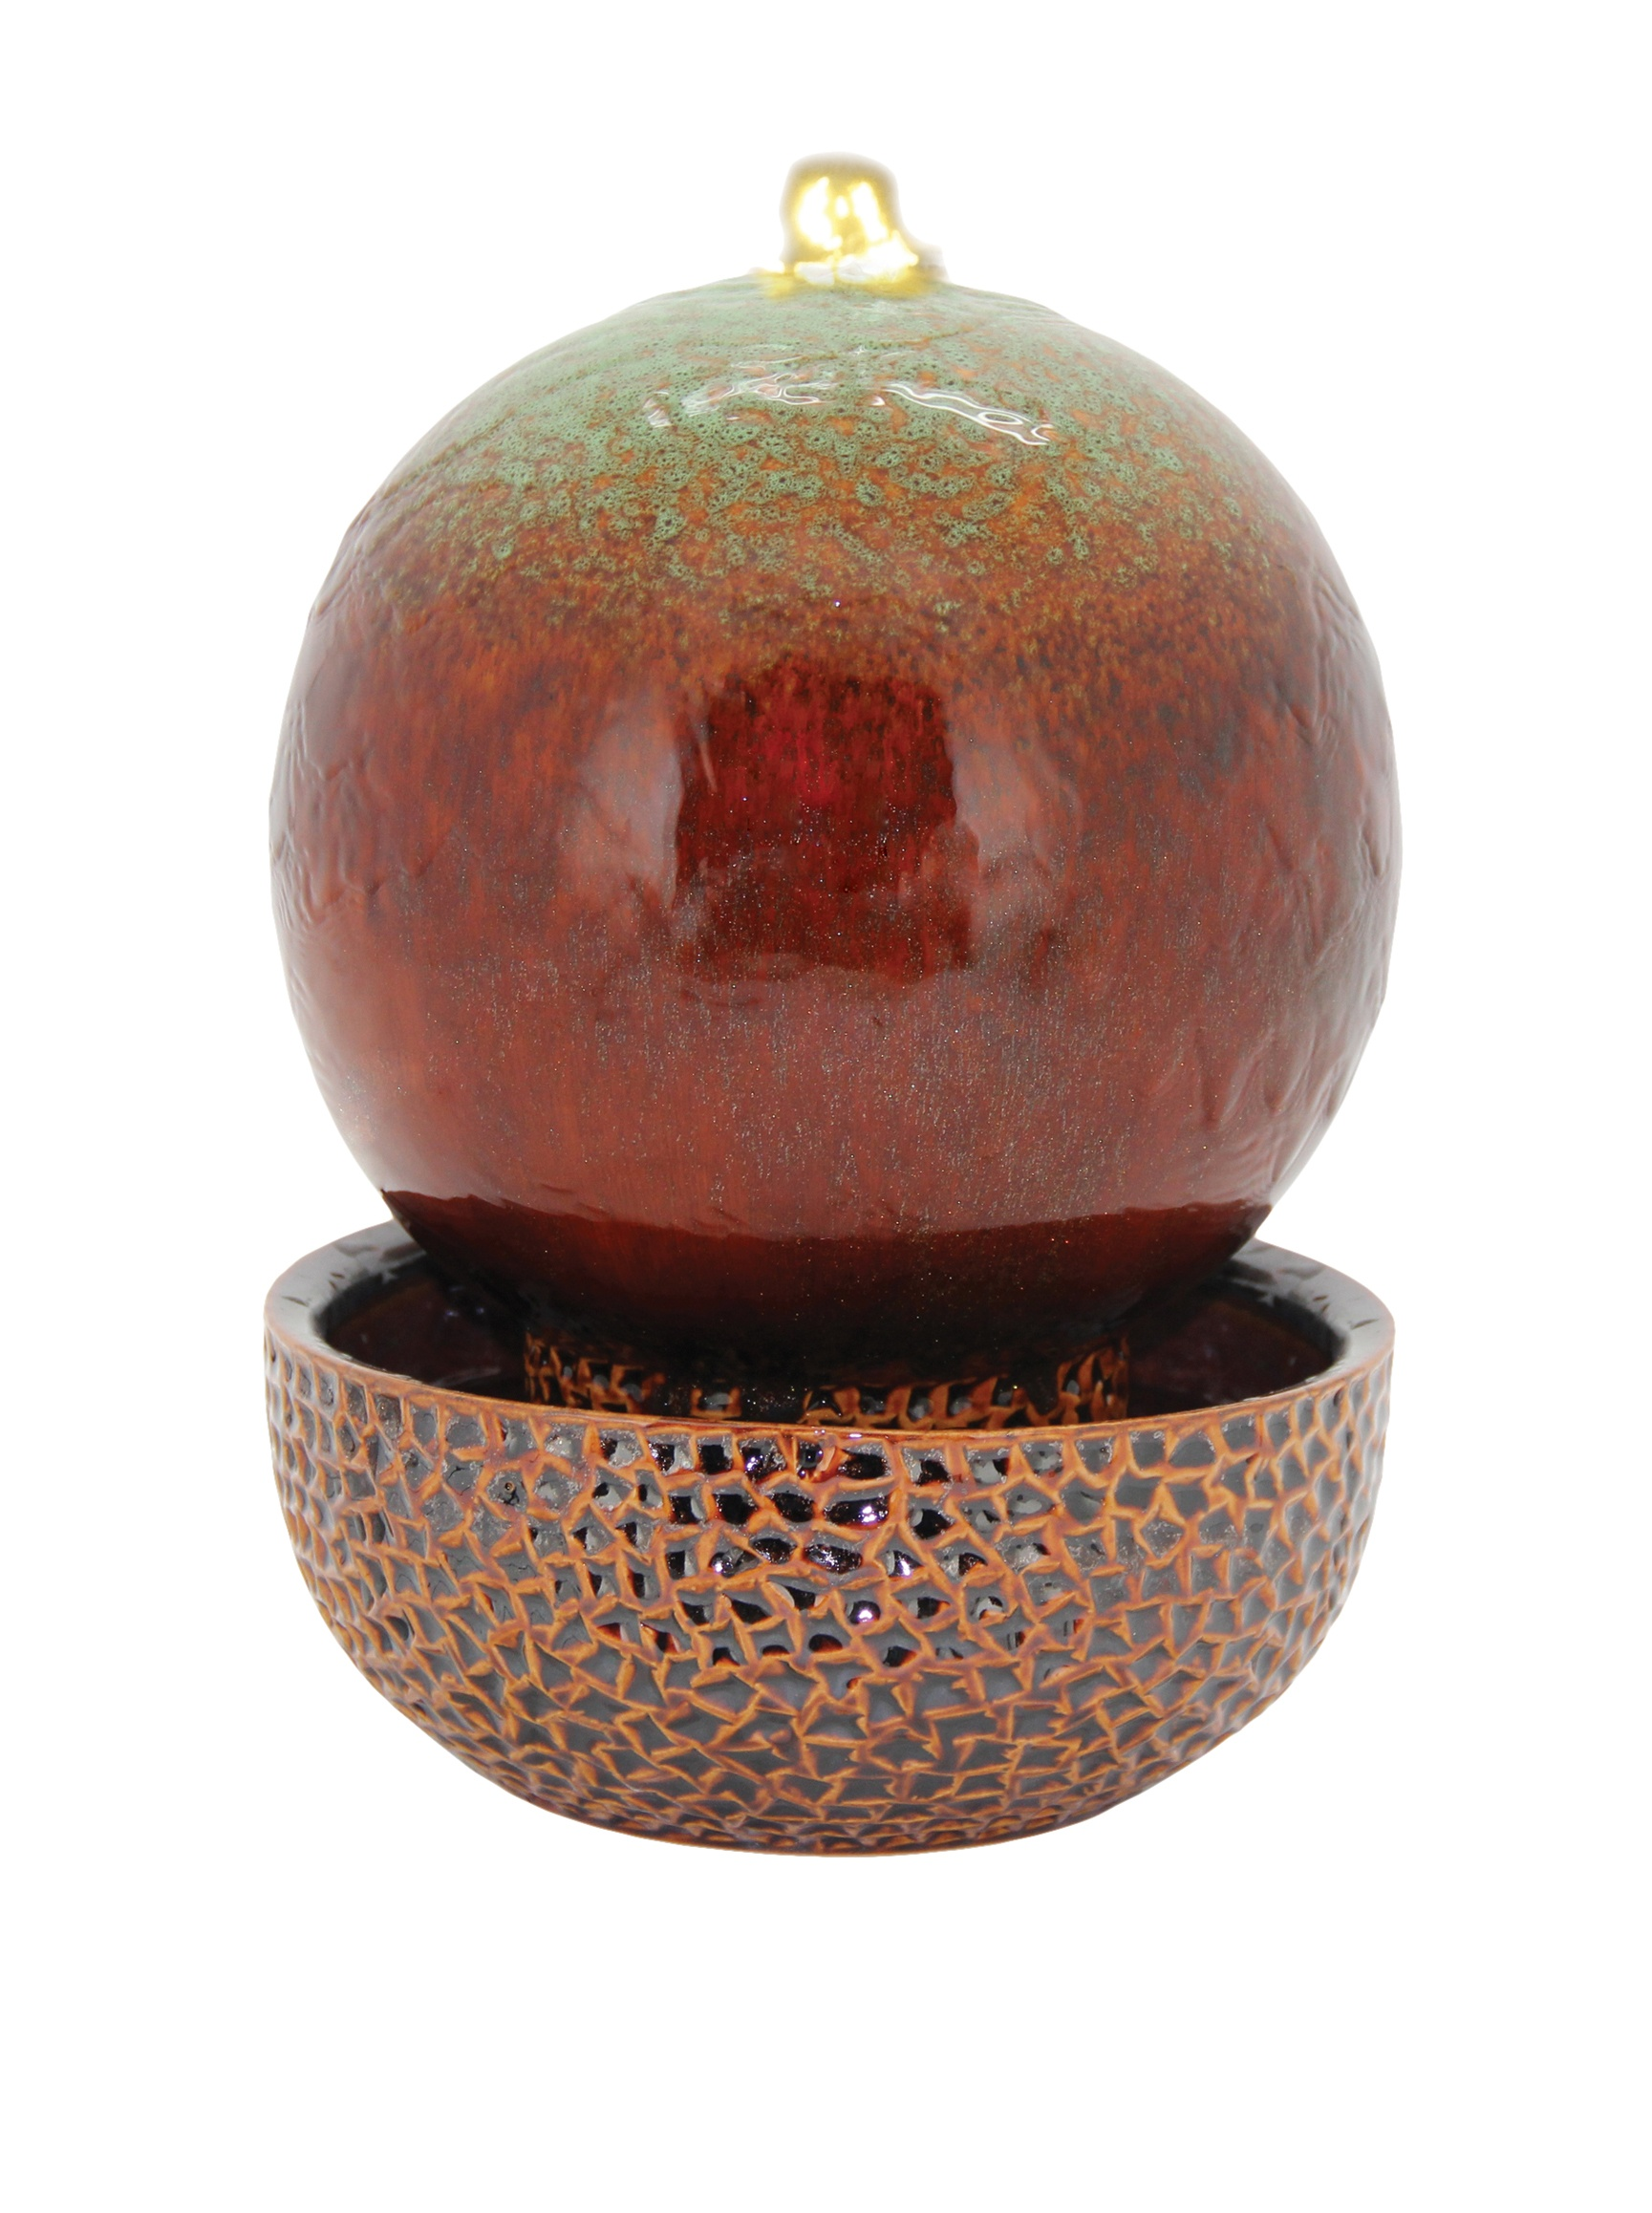 Pacific Decor White LED Globe Fountain, 11-Inch, Green/Brown by Pacific Décor